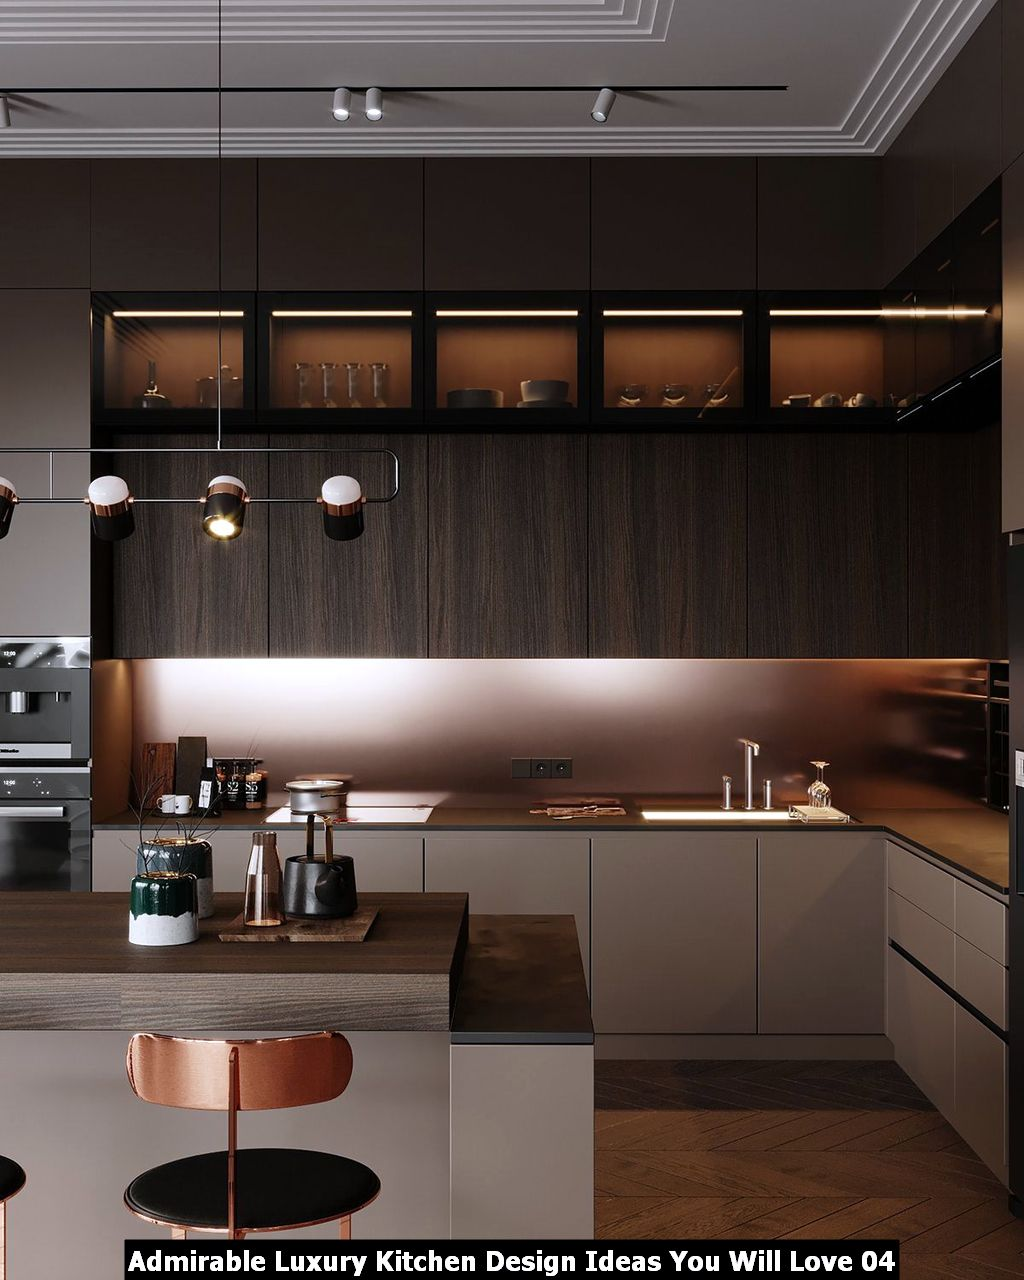 Admirable Luxury Kitchen Design Ideas You Will Love 04